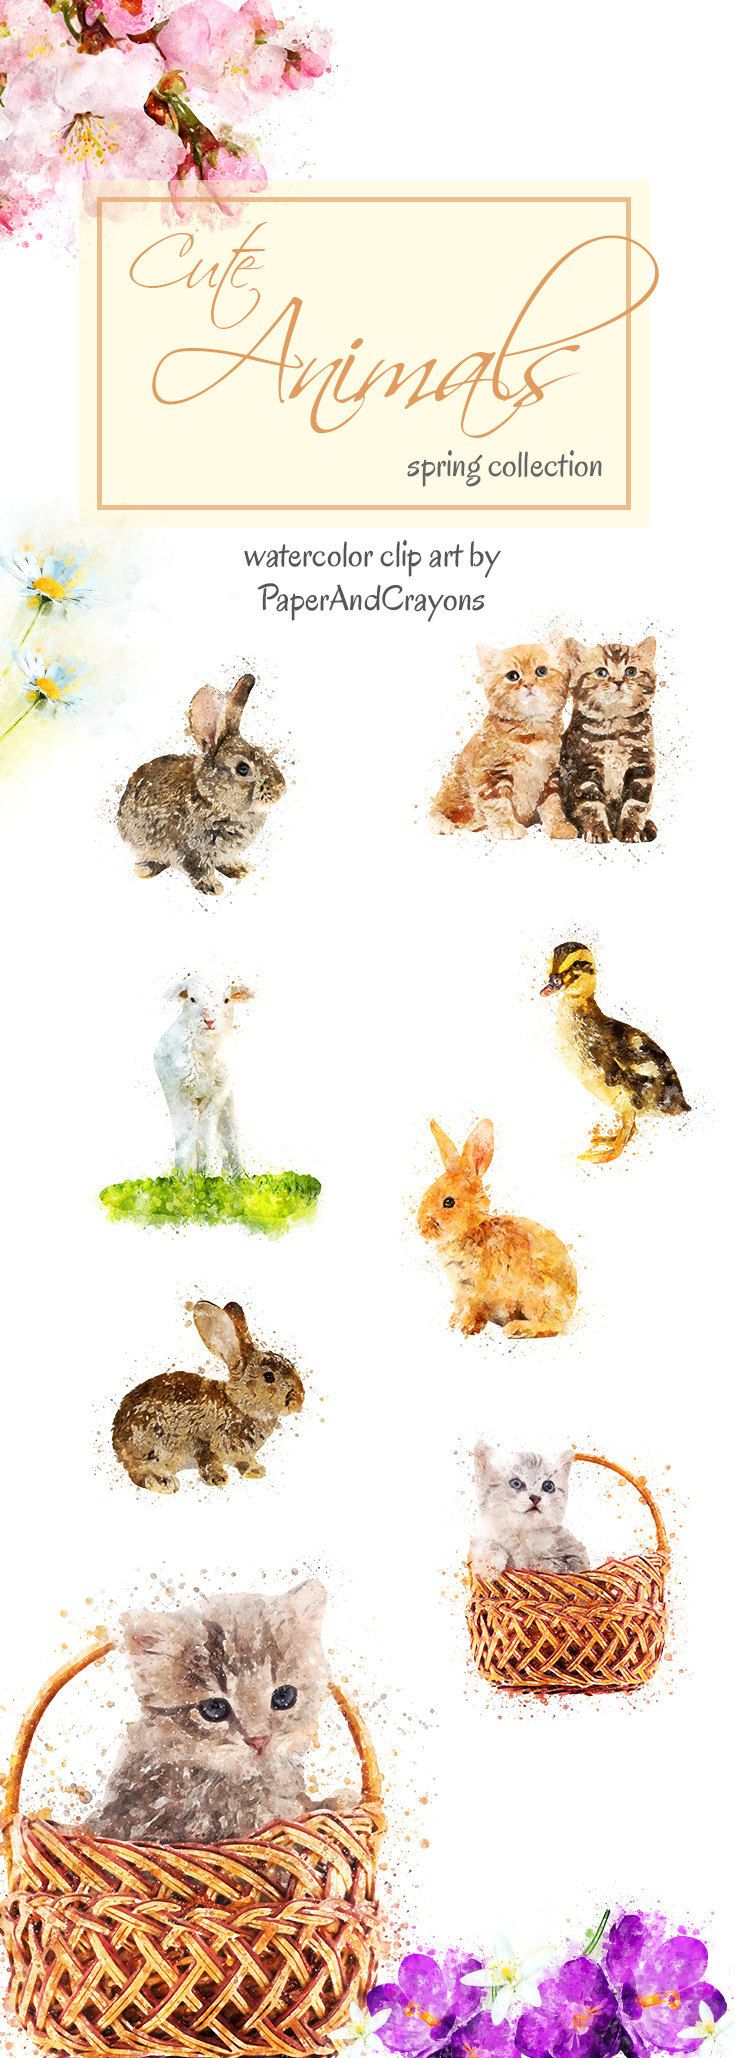 Spring Watercolor Animals, Cat Clipart, Rabbit Clip Art, Animal Graphics, Easter Bunny, Kitty, Flowers, PaperAndCrayons, Digital Download